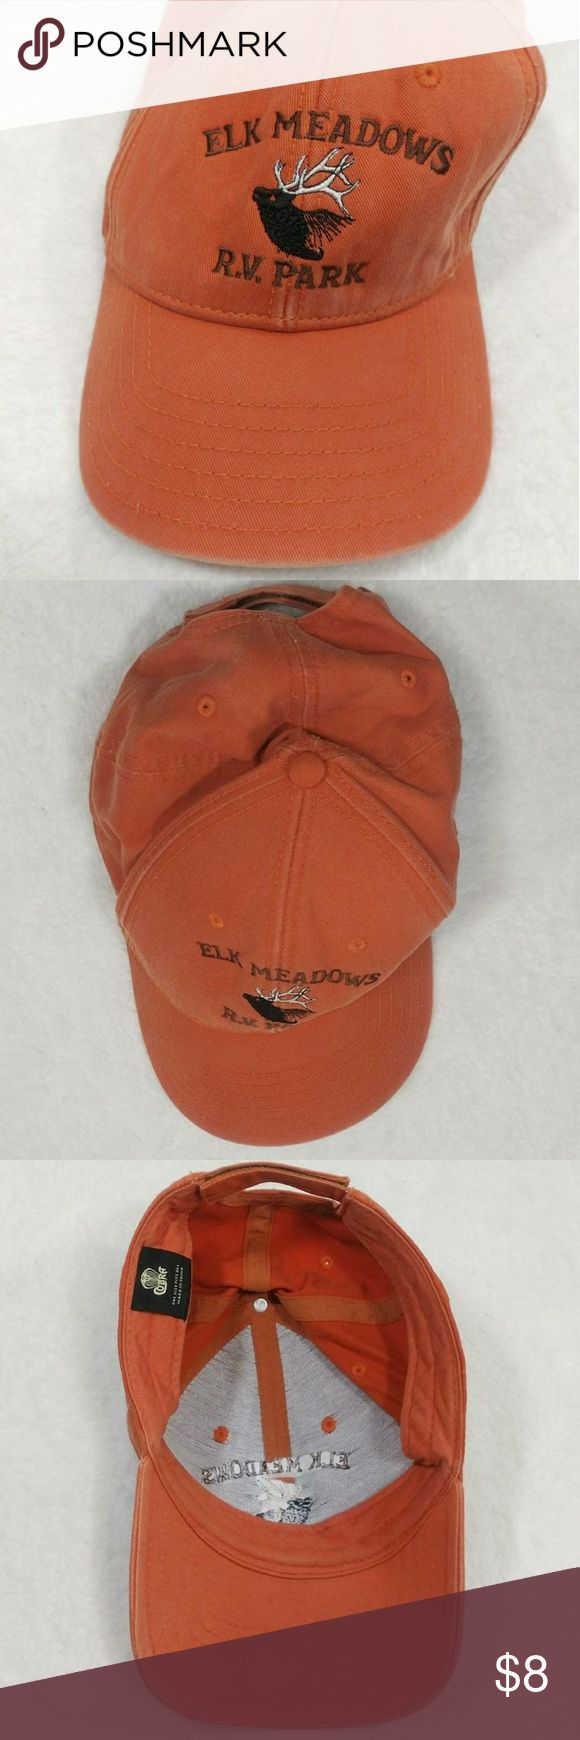 Vintage Retro Distressed Orange Baseball Cap Hat Vintage cap by Cobra.  It is an orange hat with an embroidered image of a deer on the front with the words Elk Meadows RV Park embroidered around it.  On the side the hat it says Trout Lake WA.  It has authentic light distressing to it with wear to some areas and discoloration. Some shown.  It is adjustable with it's Velcro strap on the back.  Is a mishaped, but should get better with wear.  One size fits all. Vintage Accessories Hats